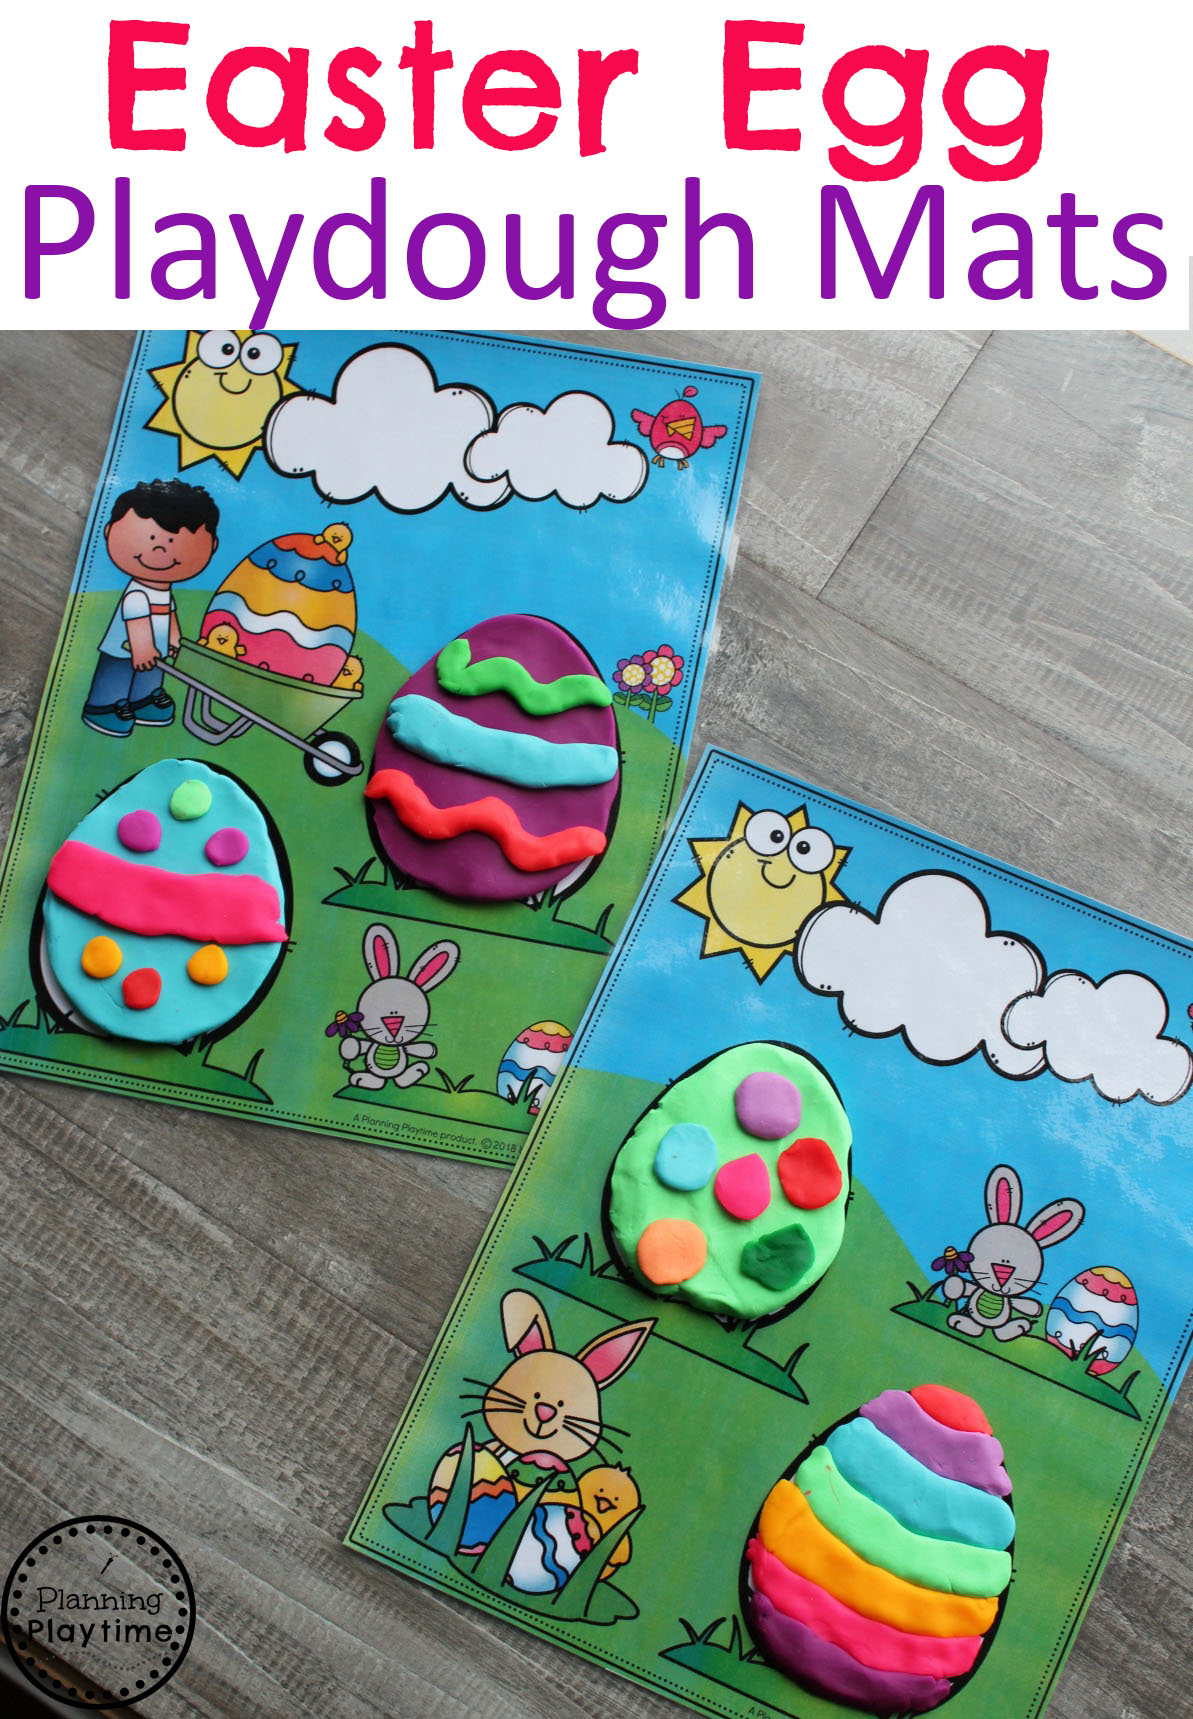 Preschool Easter Games - Easter Egg Playdough Mats #easter #preschool #easteractivities #easterpreschool #planningplaytime #playdoughmats #creativeplay